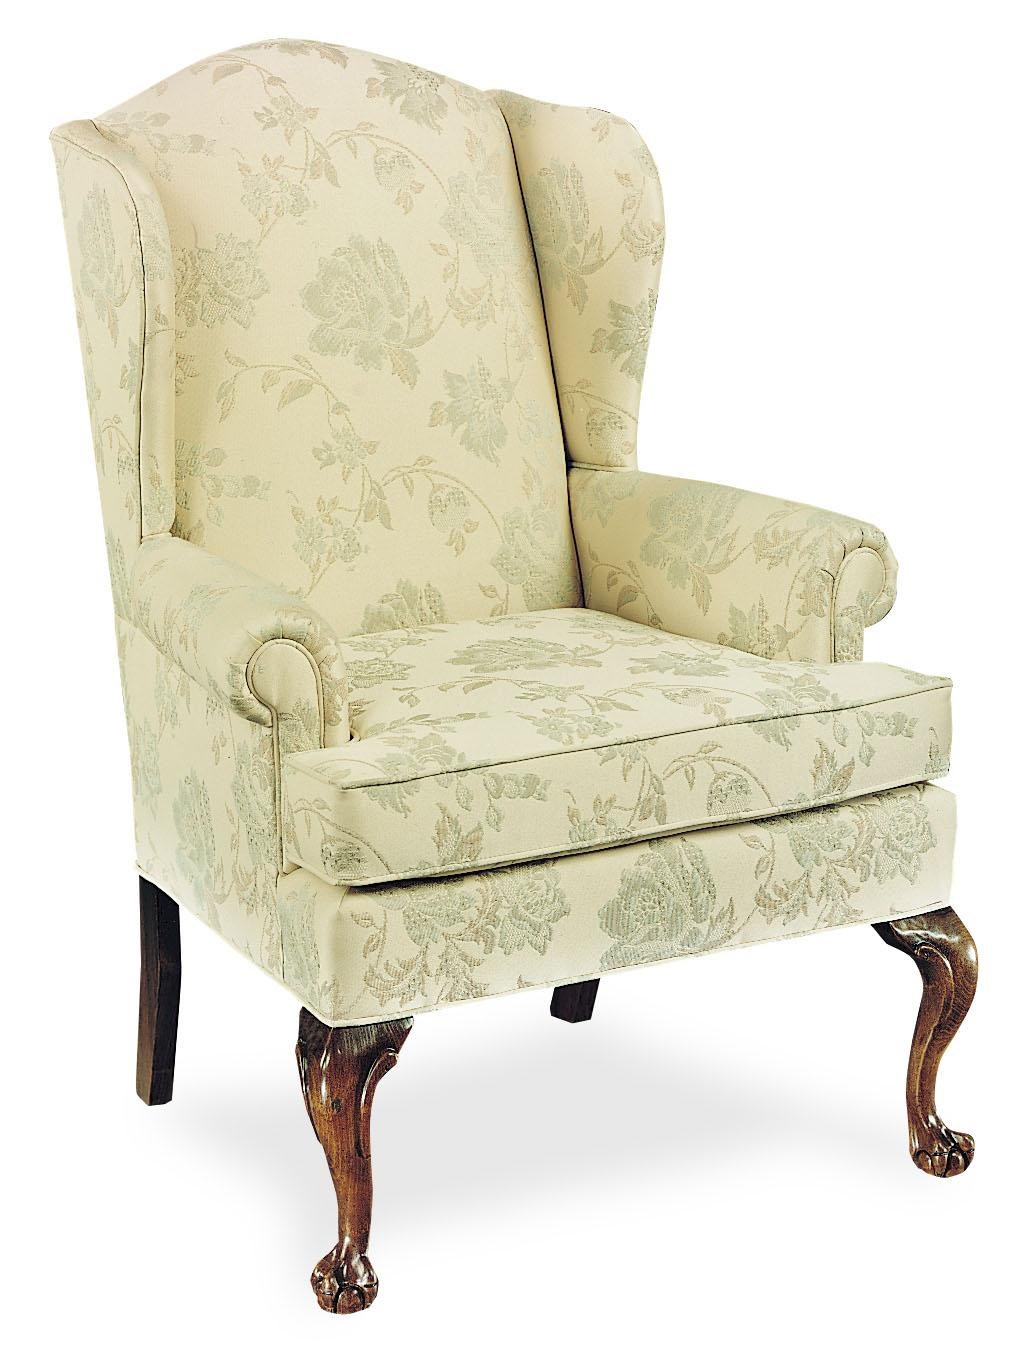 Fairfield Chairs Chairs Upholstered Wing Chair With Claw Feet By Fairfield At Lindy S Furniture Company